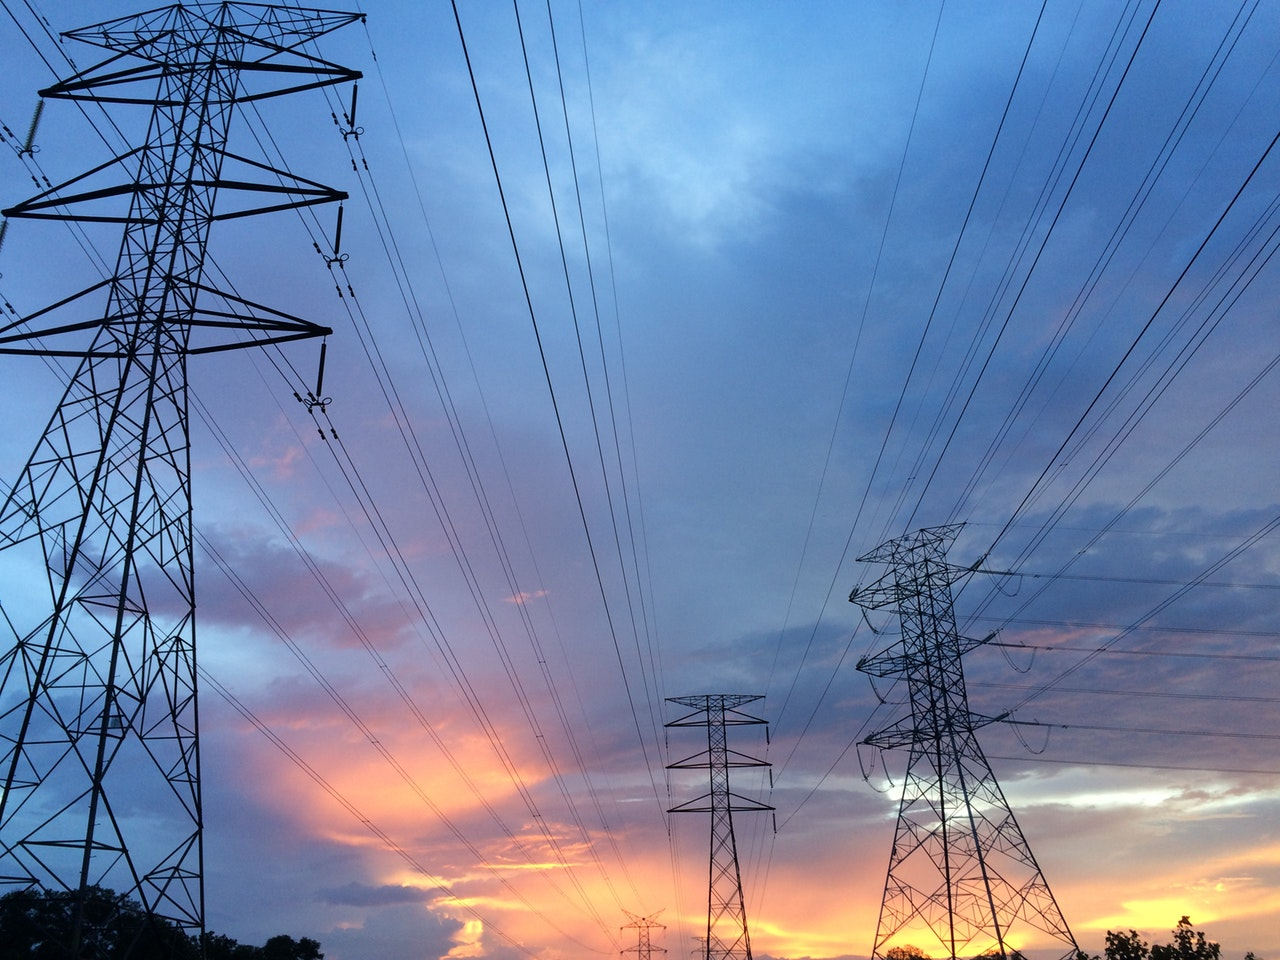 What is the happiest memory you have of when the power went out? -